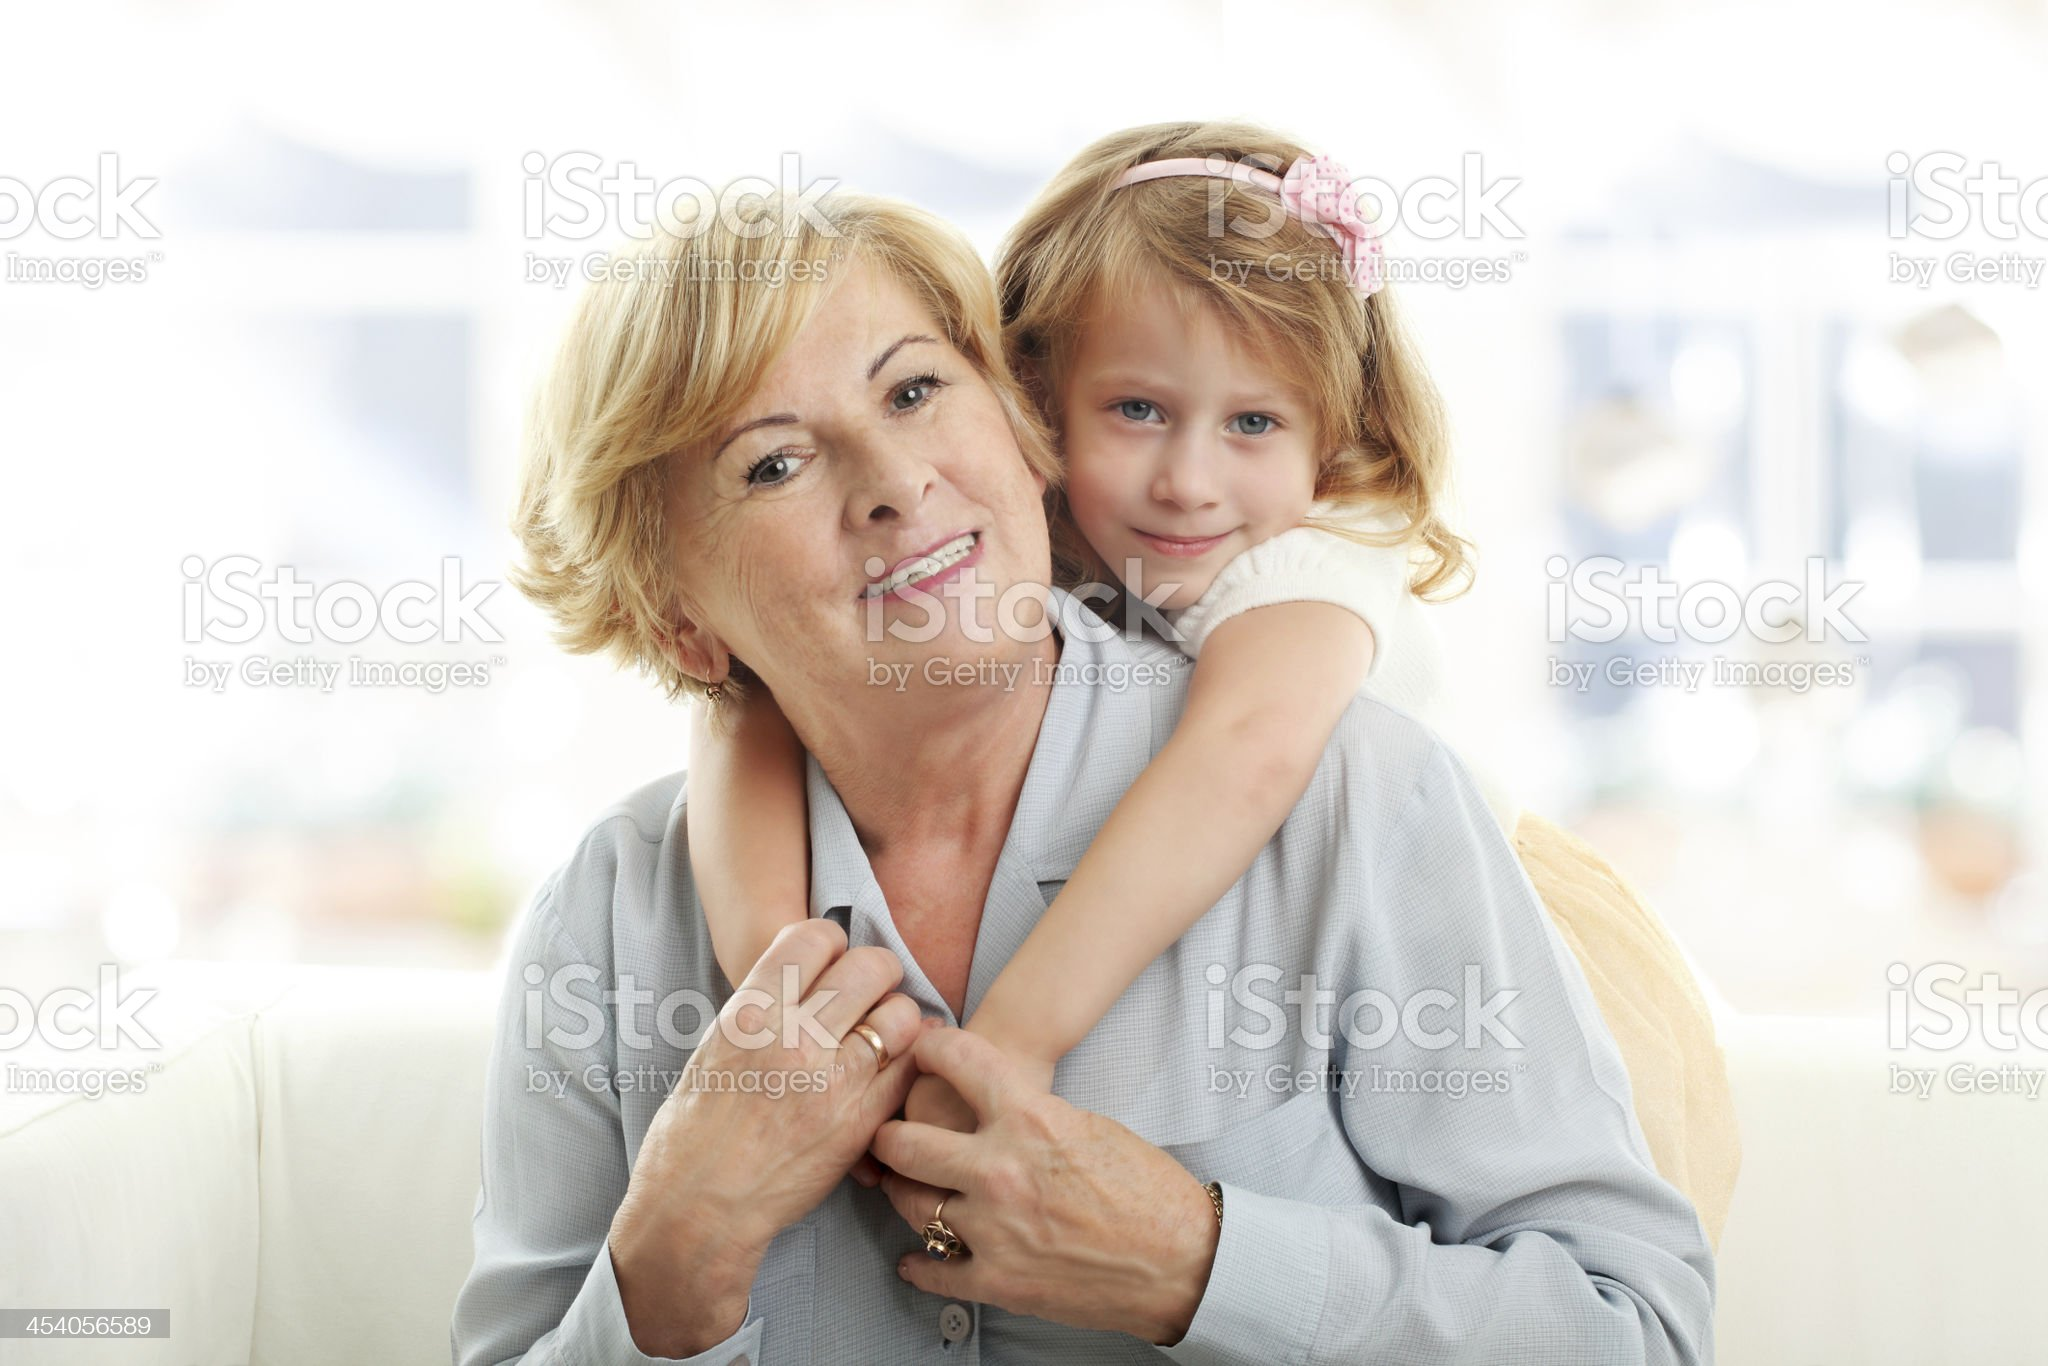 Smiling young girl hugging her grandmother royalty-free stock photo